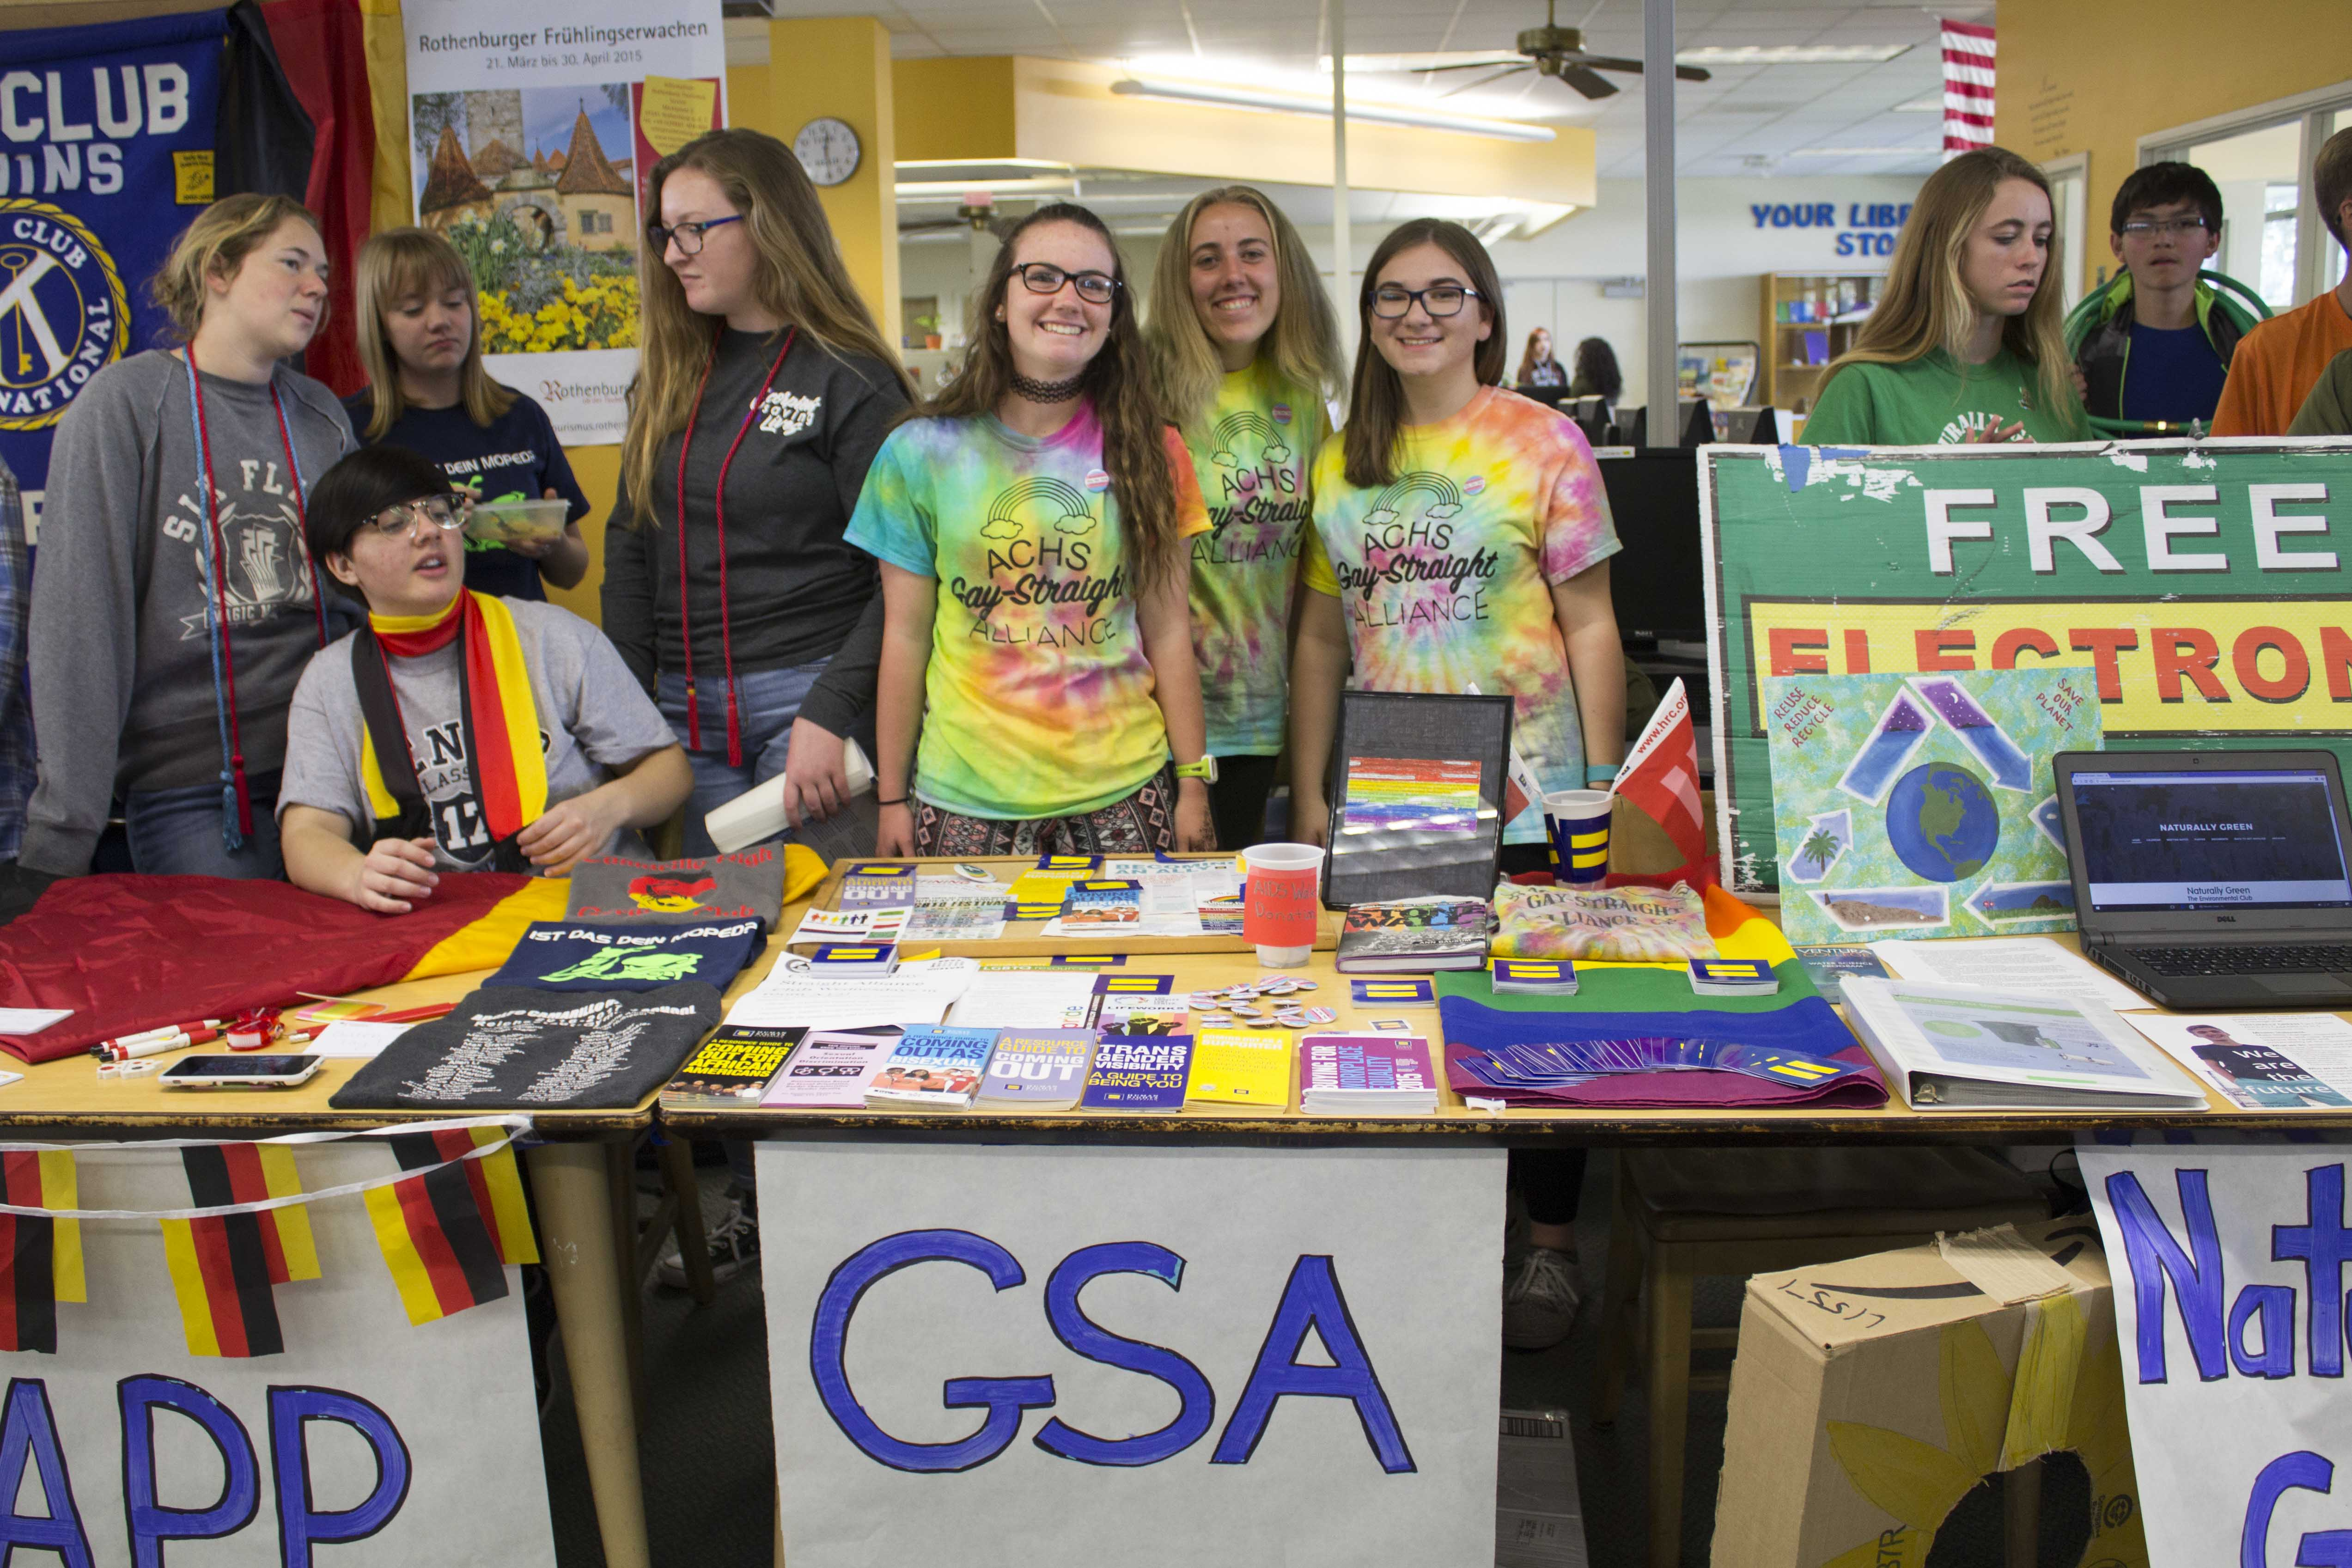 Tasha Stuart-Shuman, senior, Bella Roske, sophomore, and Carly Nigh, junior, from Gay-Straight Alliance, a club that promotes equality for all students on campus.